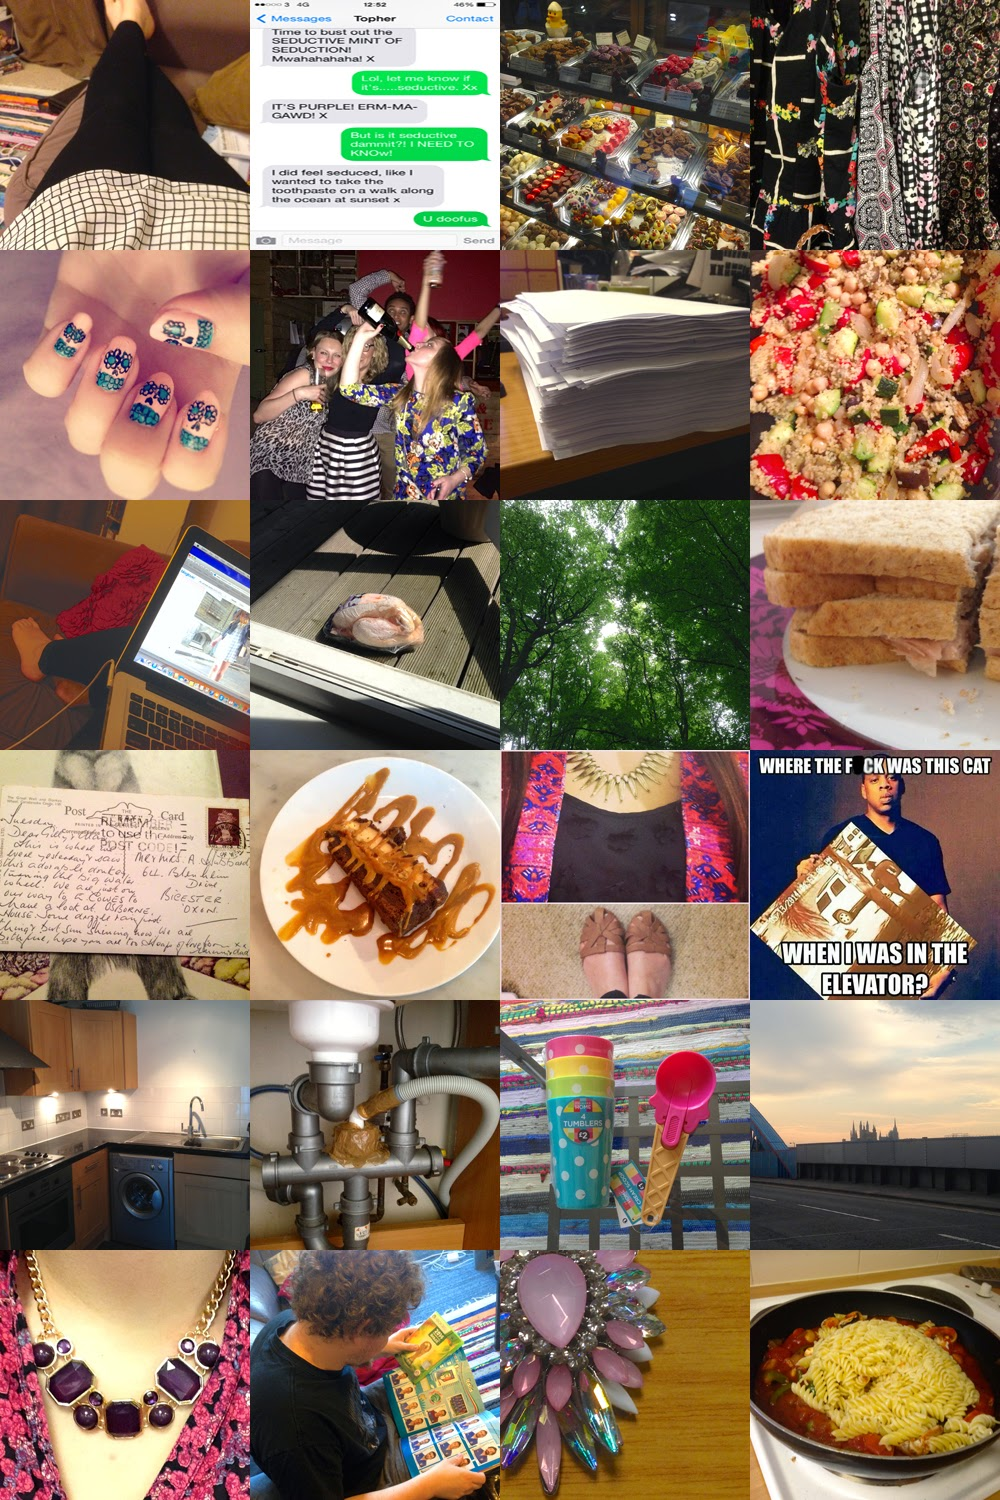 365 Project: The May edition of Taking a Photo Everyday